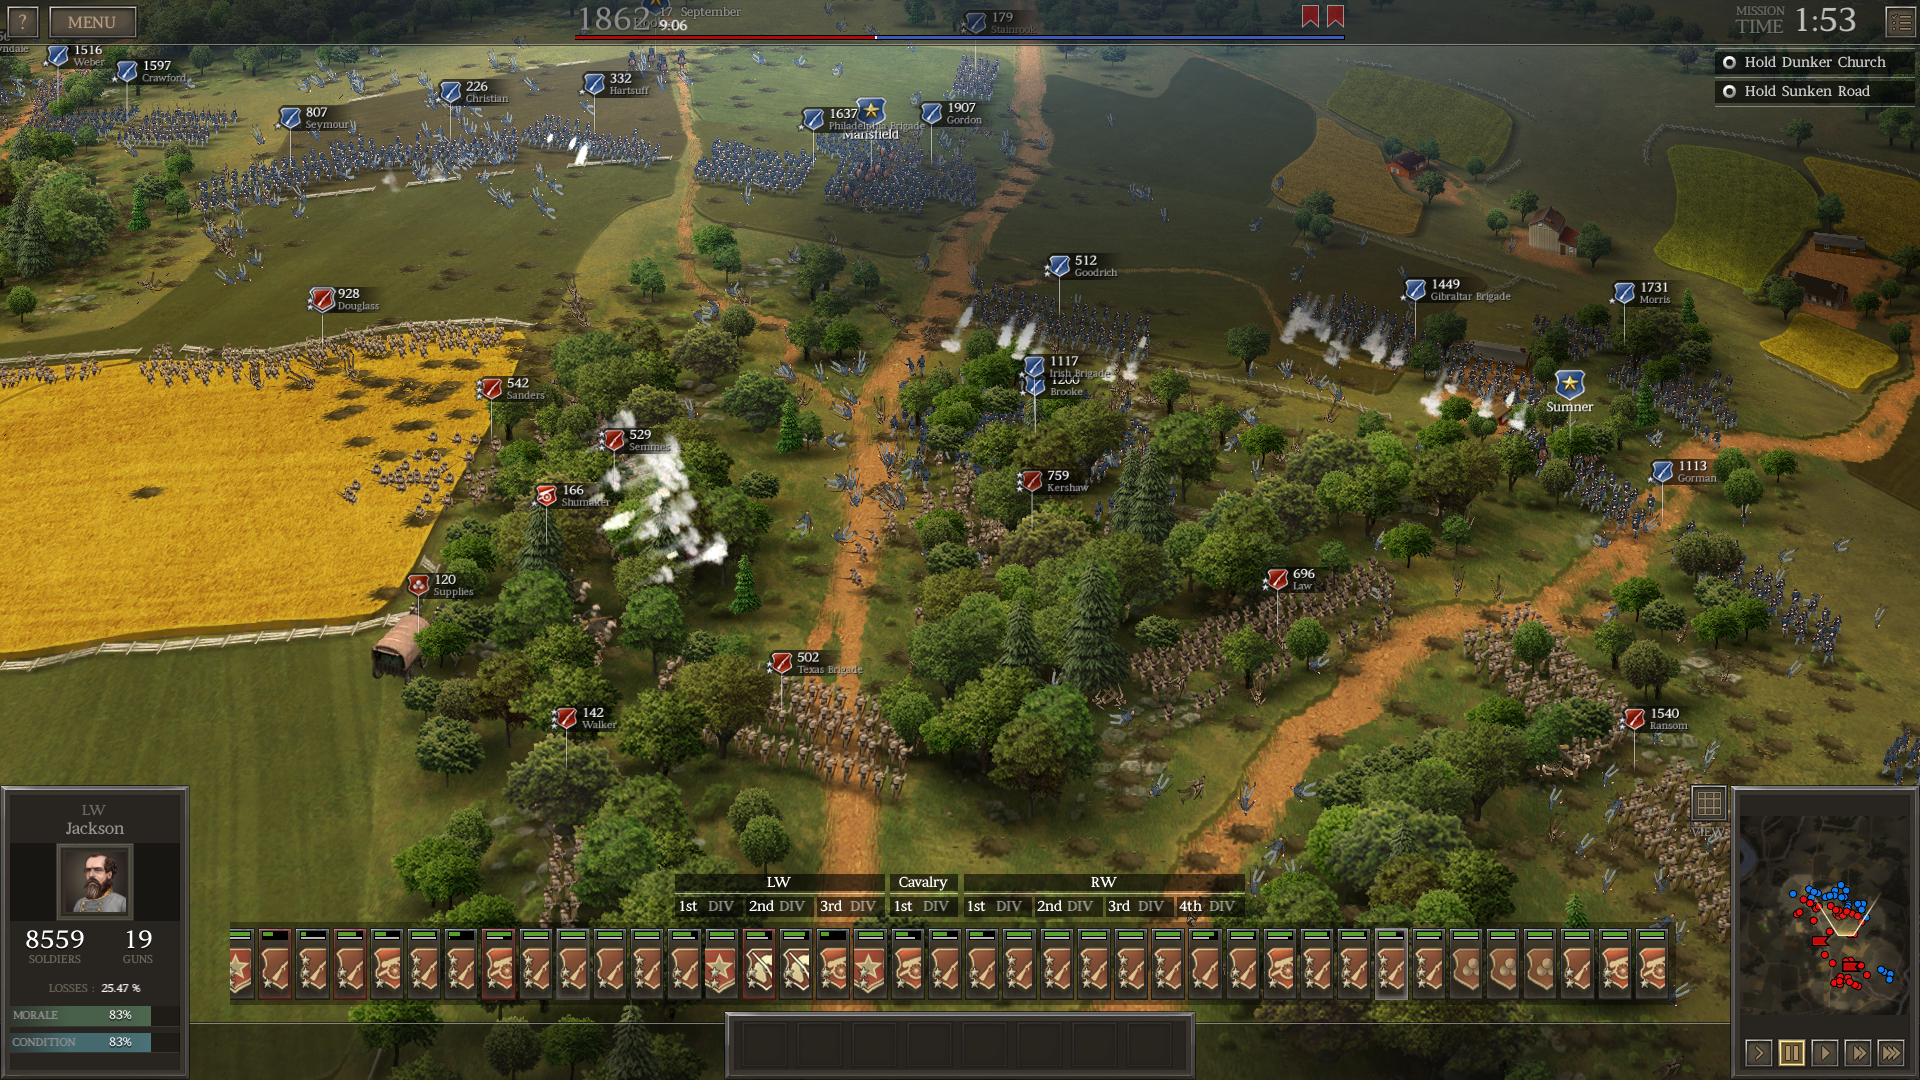 The AI will expand its forces to surround and flank player much more frequently than before.